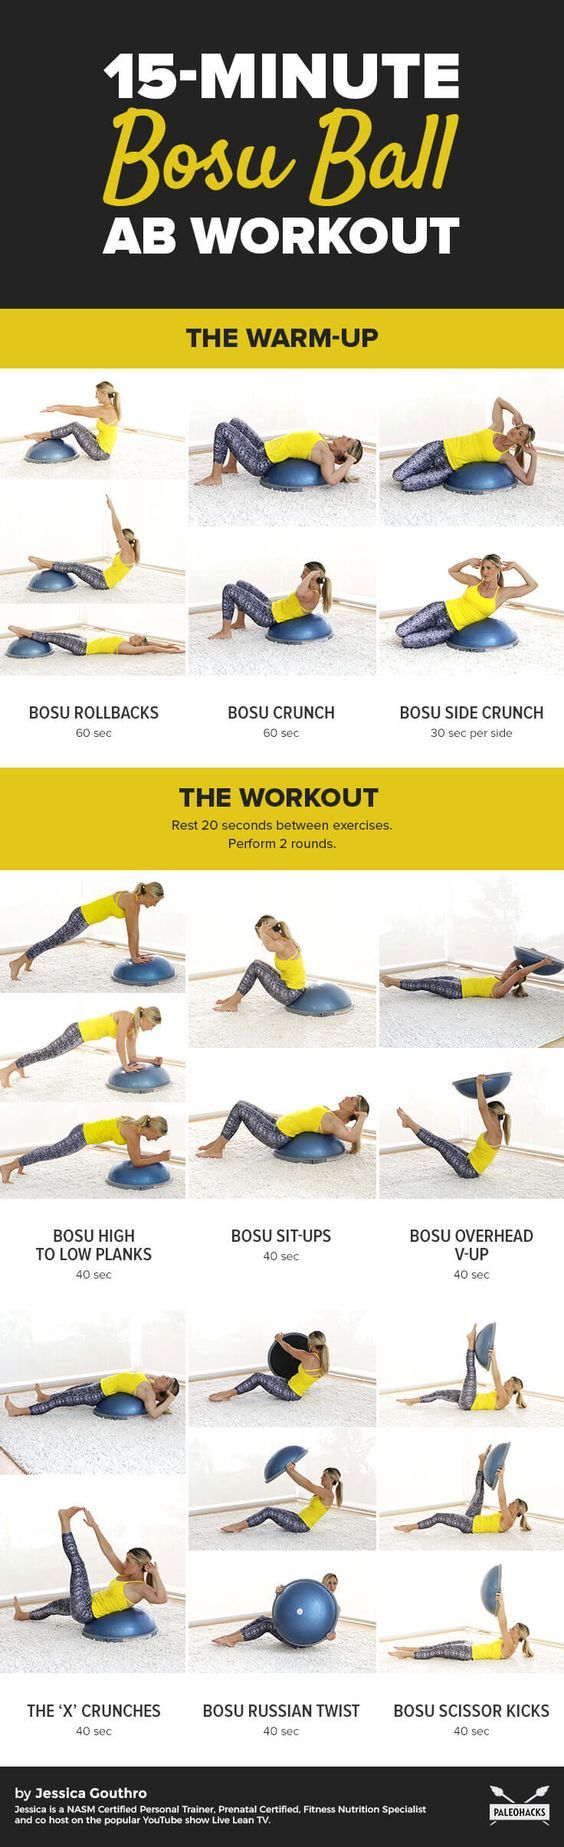 This bosu ball ab workout tightens and tones your abs from every angle. Do this workout anywhere-from the gym or the comfort of your home! Get the full workout here: http://paleo.co/bosuballworkout